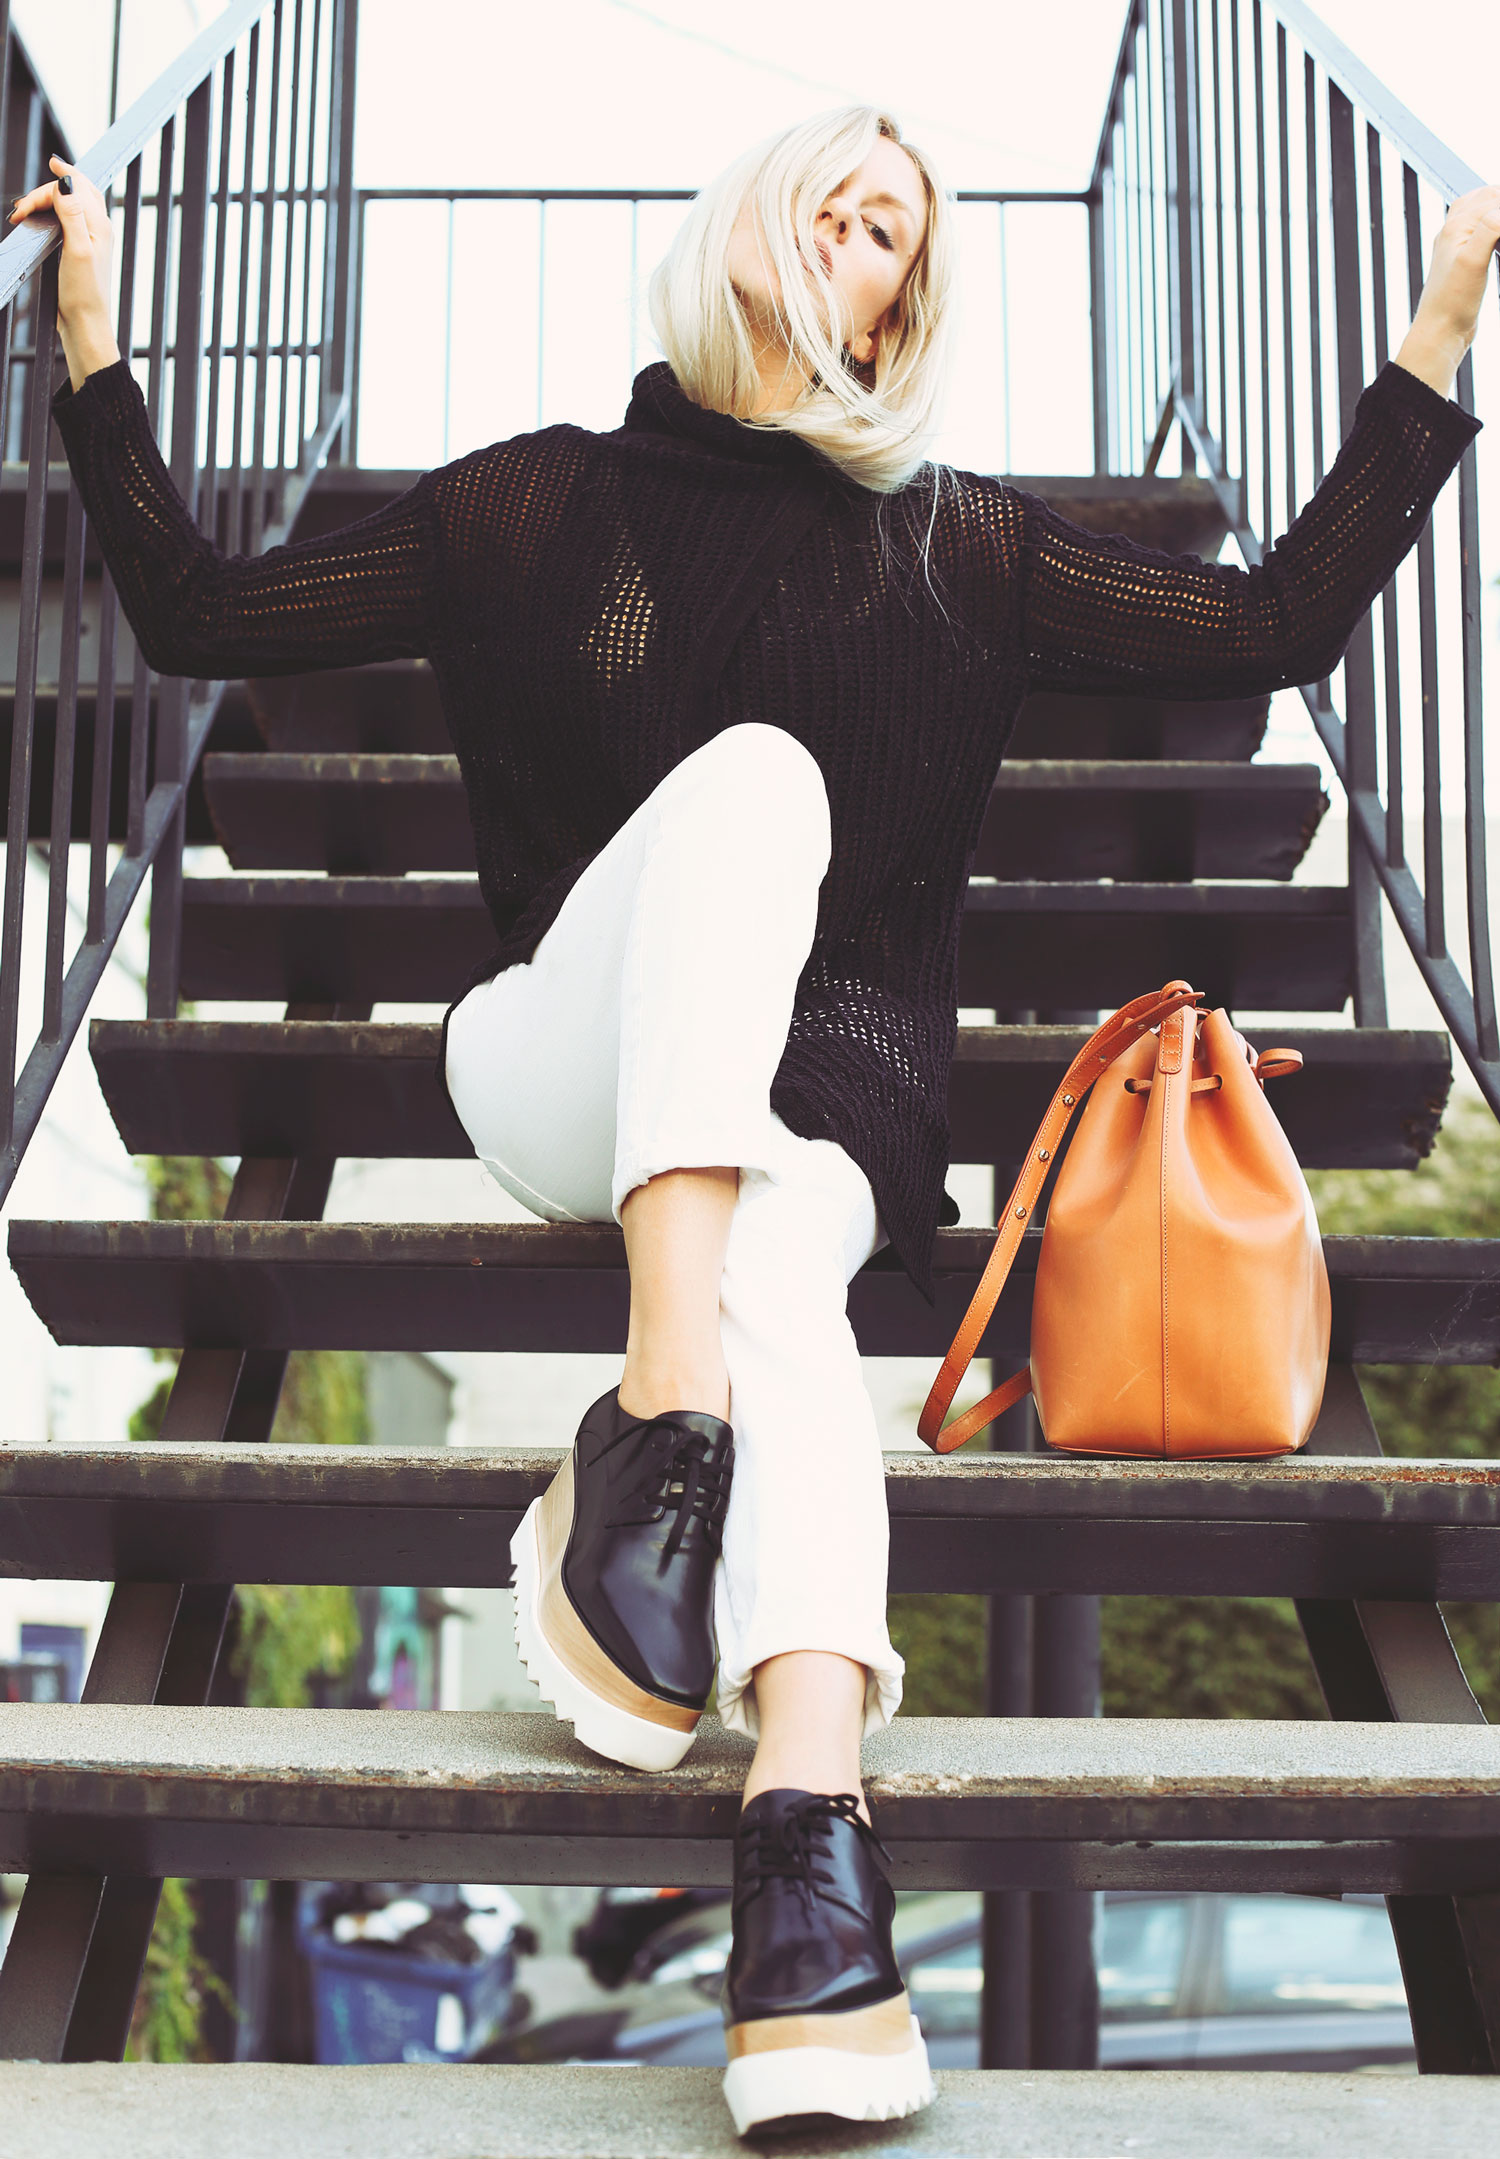 Shea Marie is wearing a black mesh sweater from Elie Tahari, shoes from Stella McCartney and a bag from Mansur Gavriel